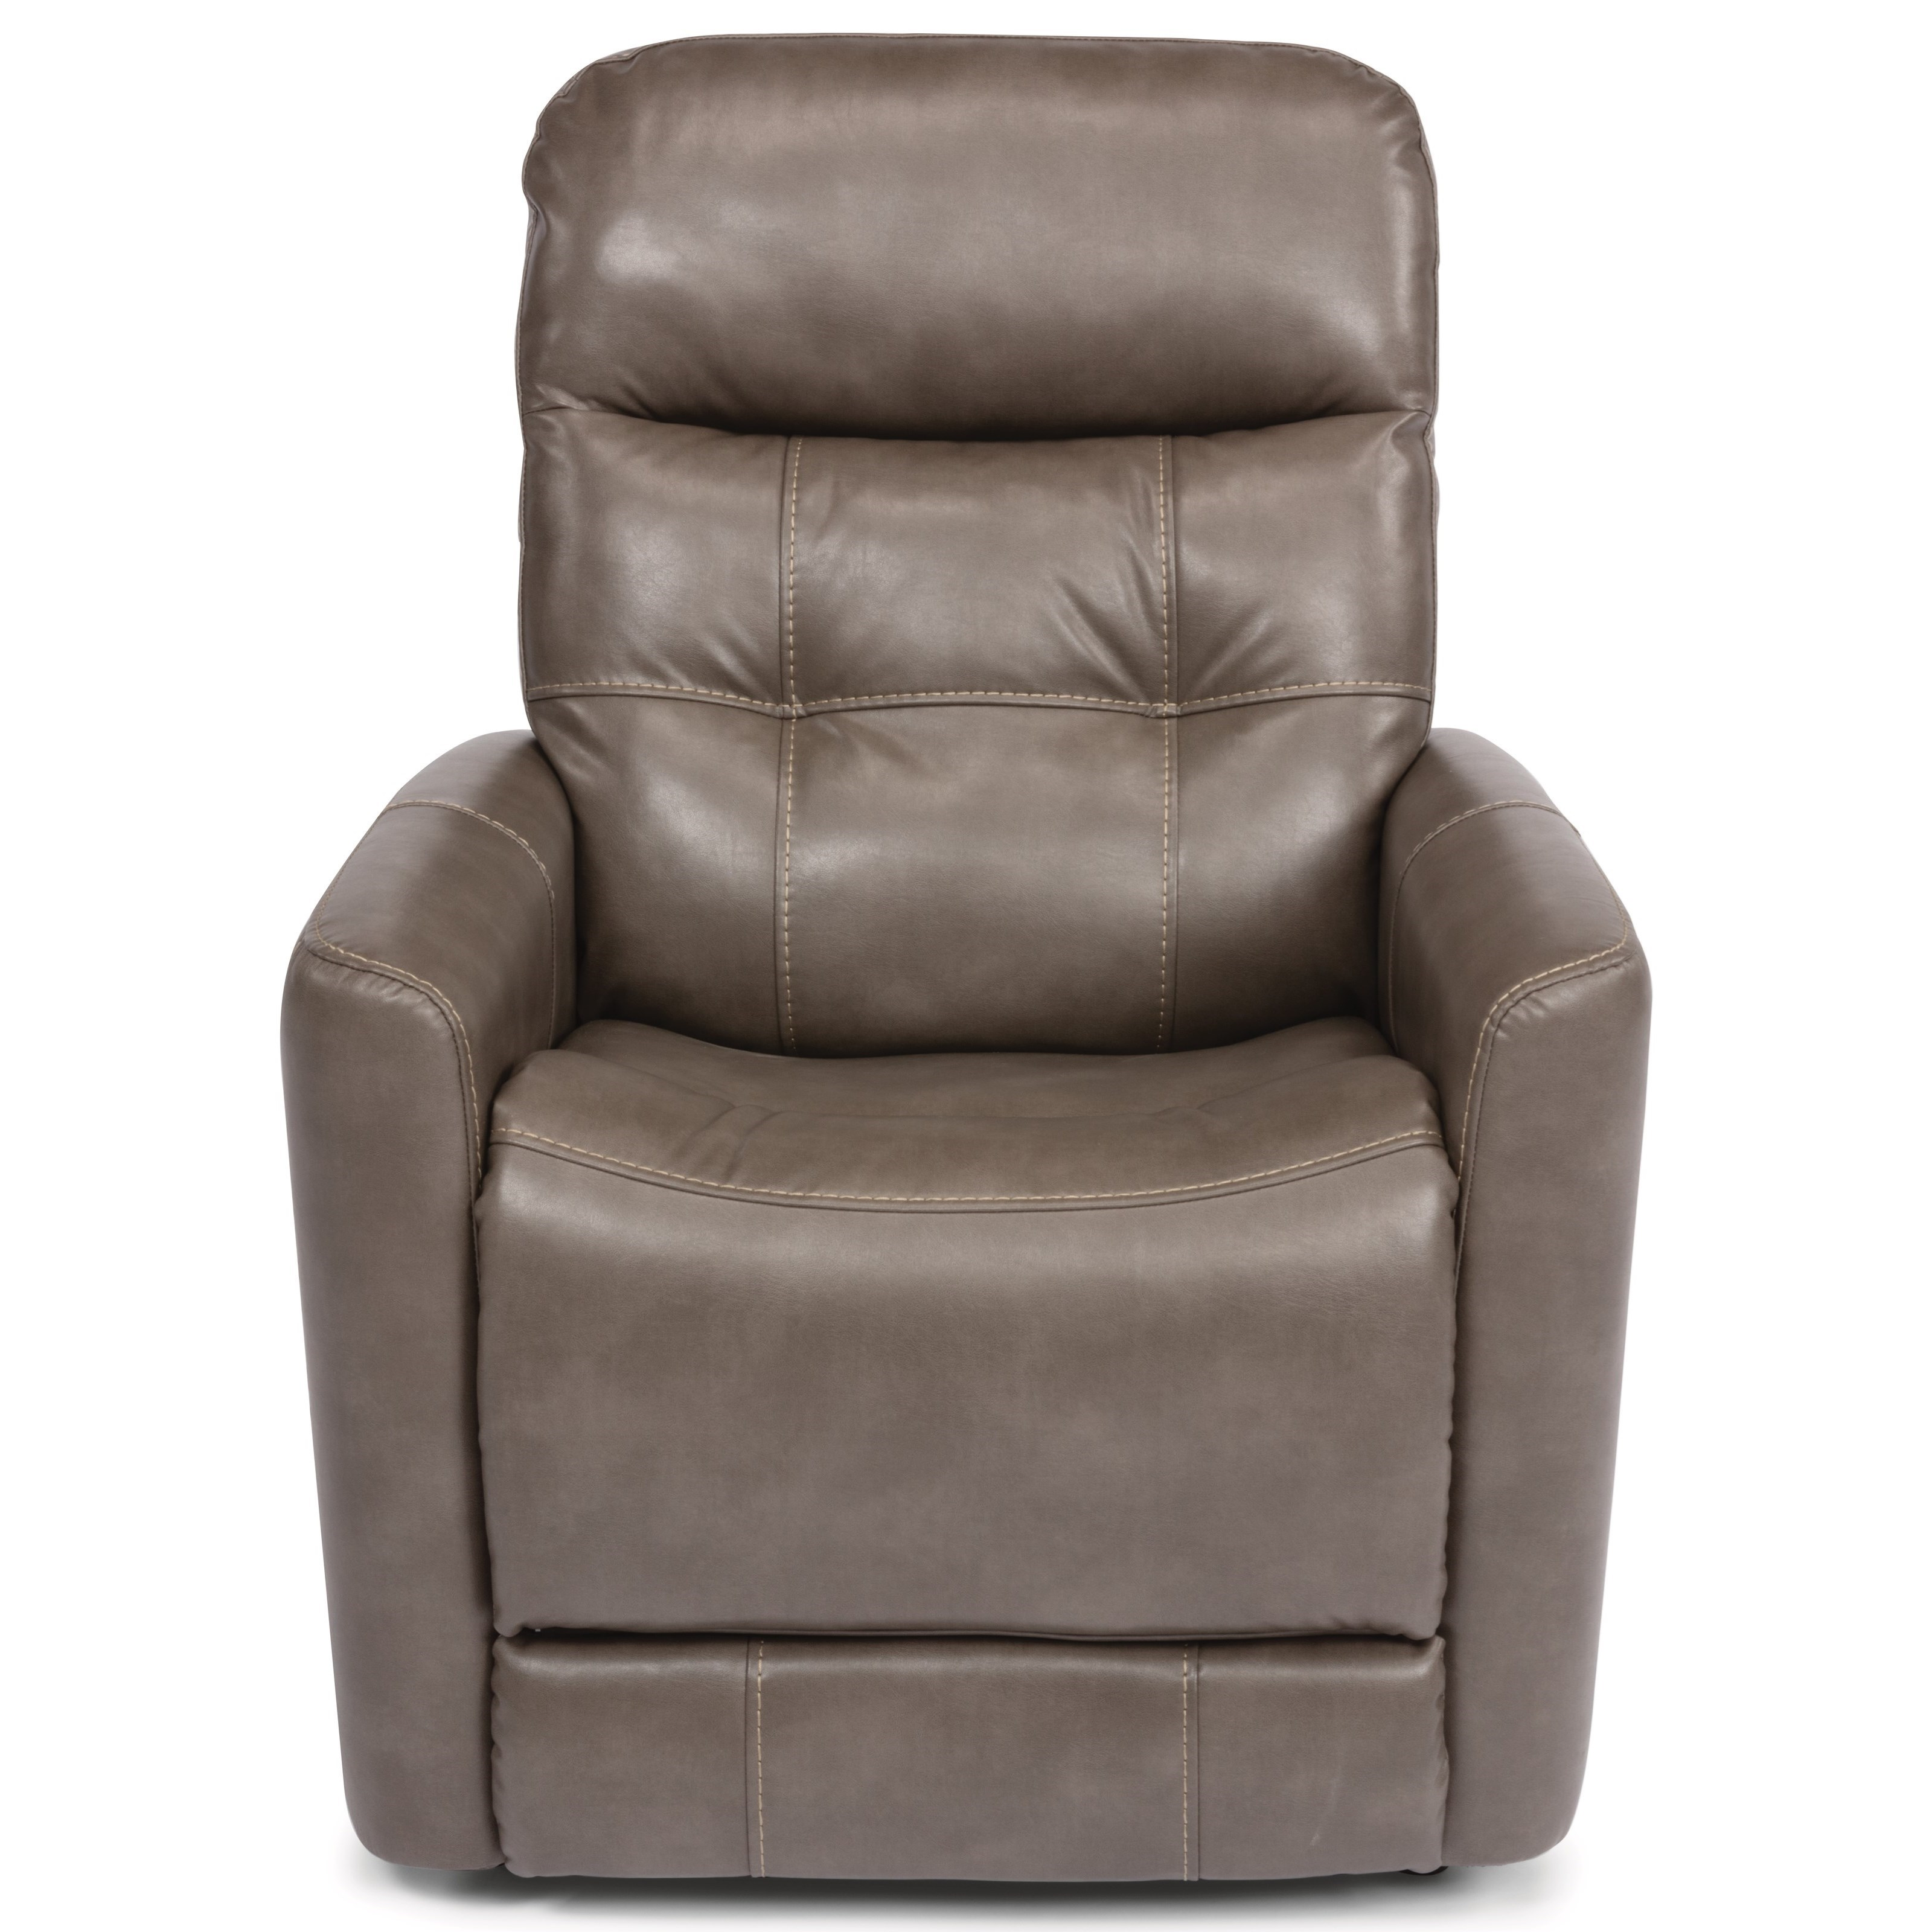 Latitudes - Kenner Power Lift Recliner with Power Headrest by Flexsteel at Rooms and Rest